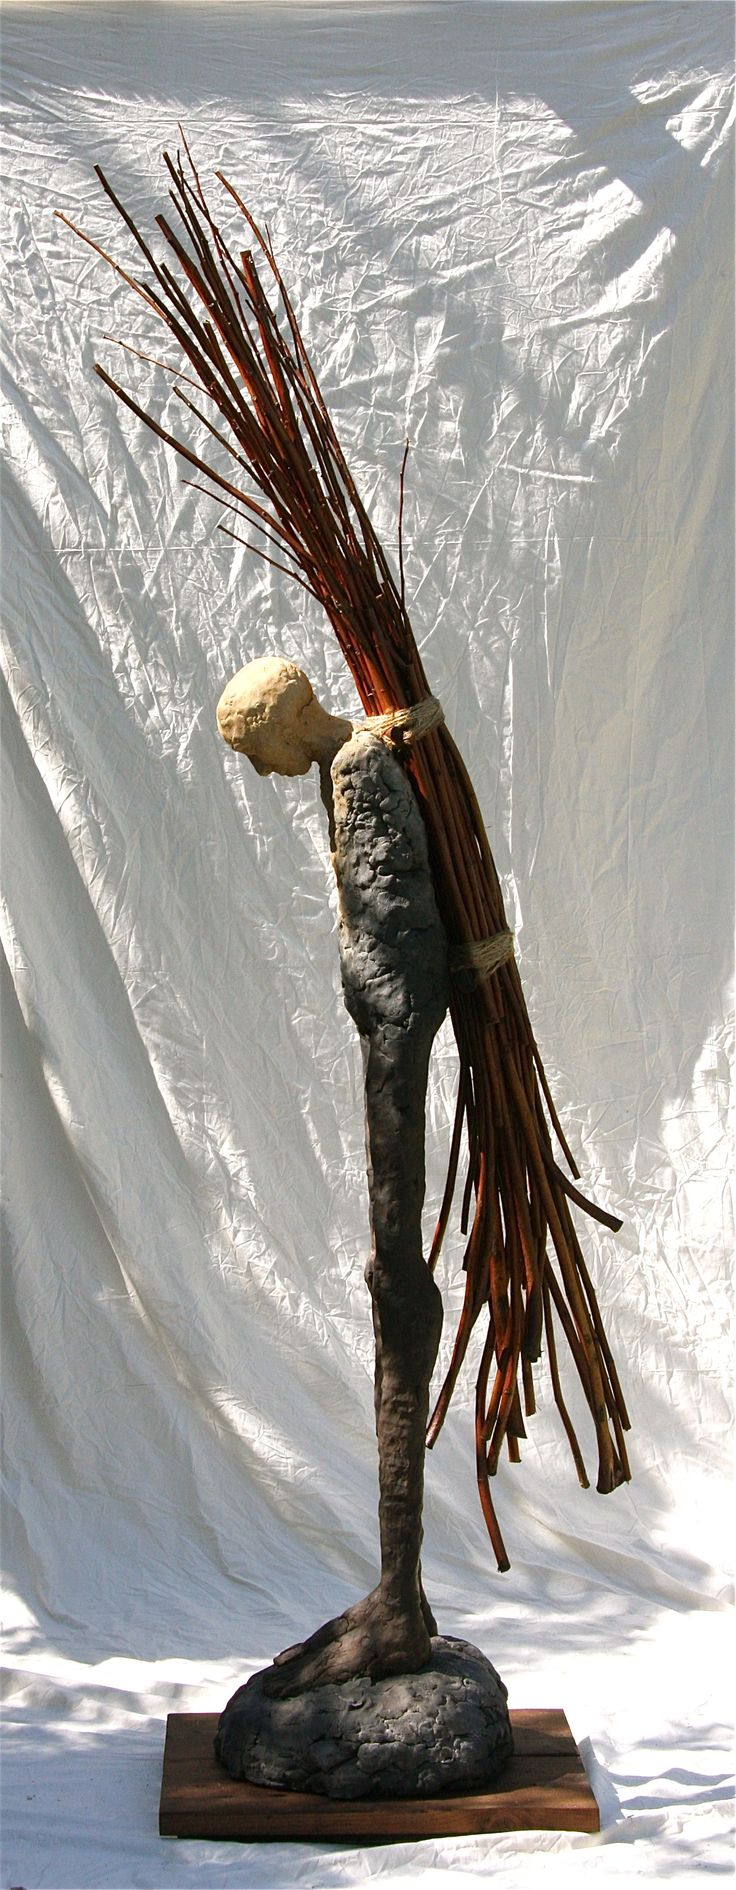 """To carry the old forest burdens. by William Catling, c. 2010 Ceramic, wood and twine 108"""" x 18"""" x 30"""""""